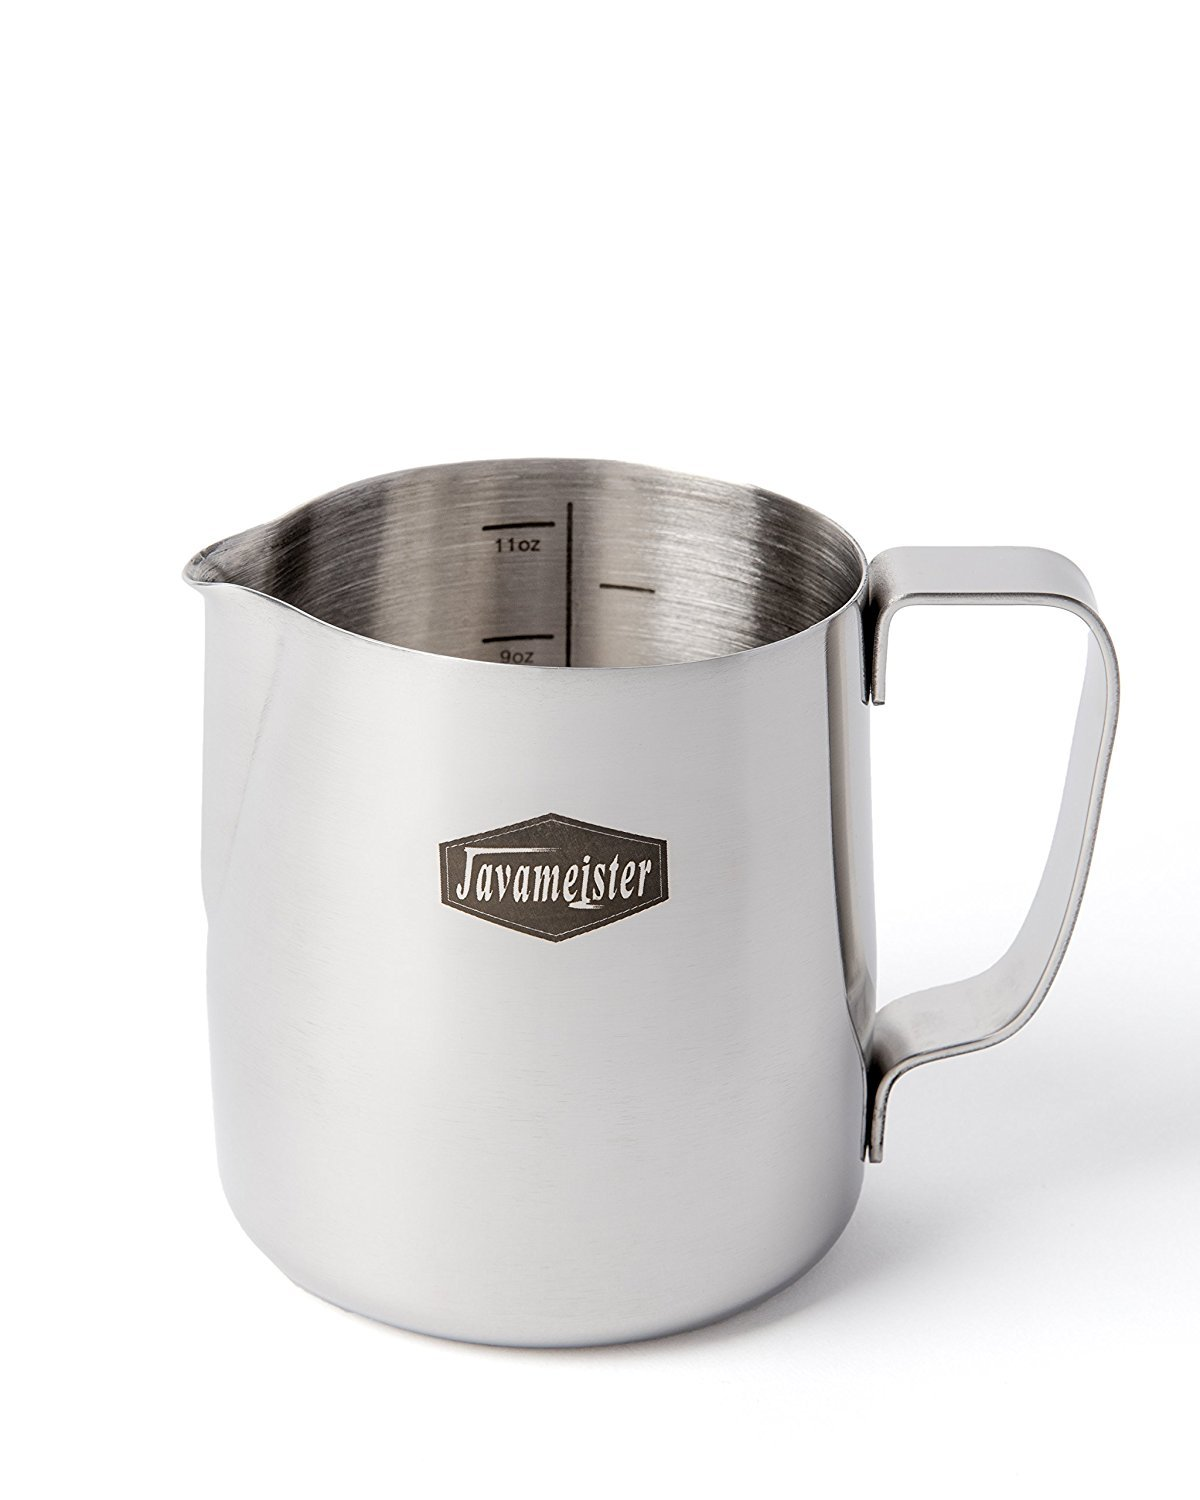 Javameister 12-ounce Stainless Steel Latte Milk Steaming and Frothing Pitcher by Javameister (Image #1)